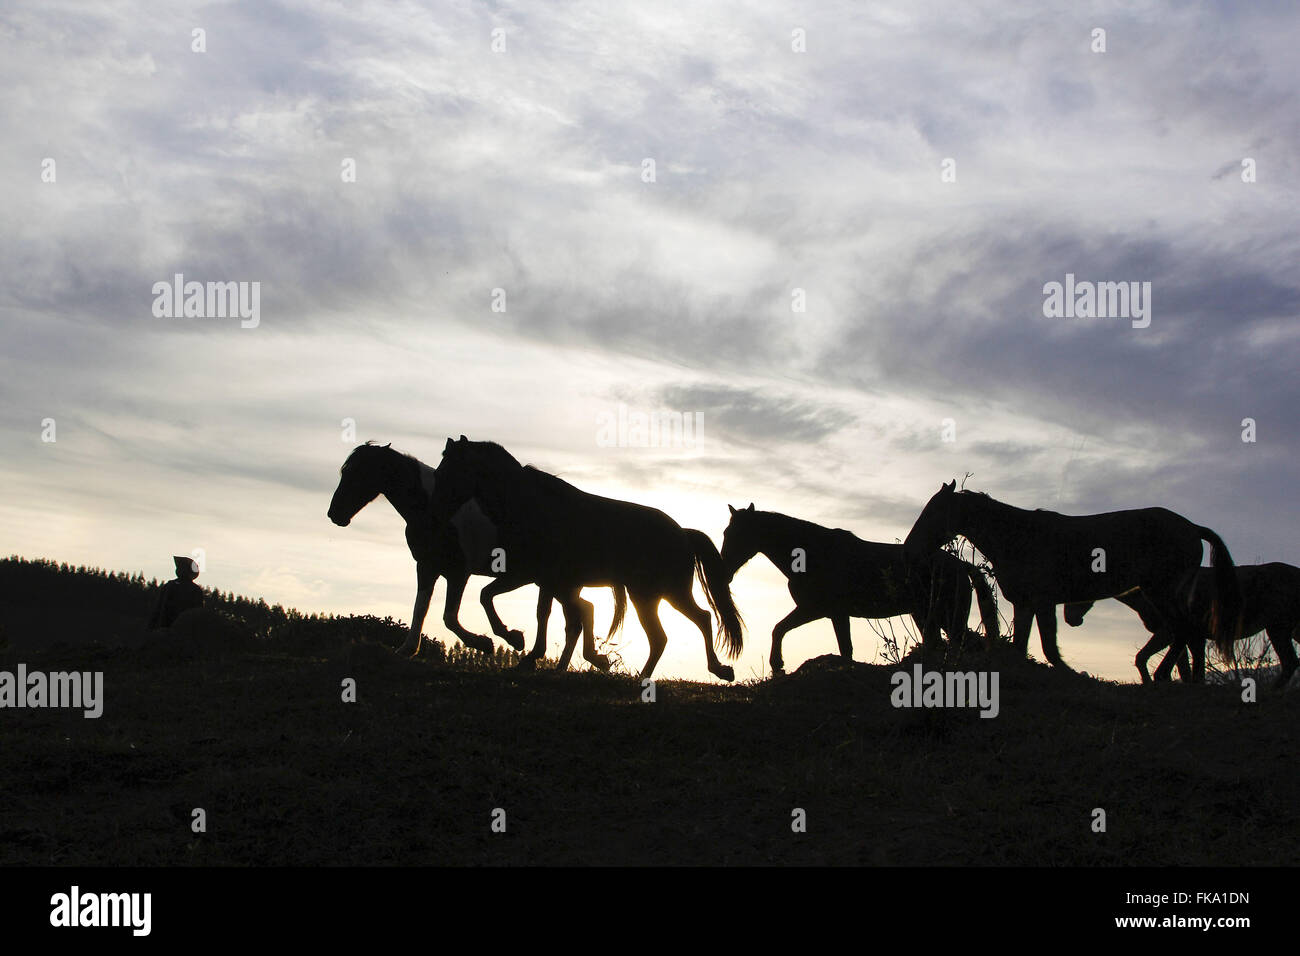 Knight collects horses to saddle after landing during the Pilgrimage of Faith - Stock Image